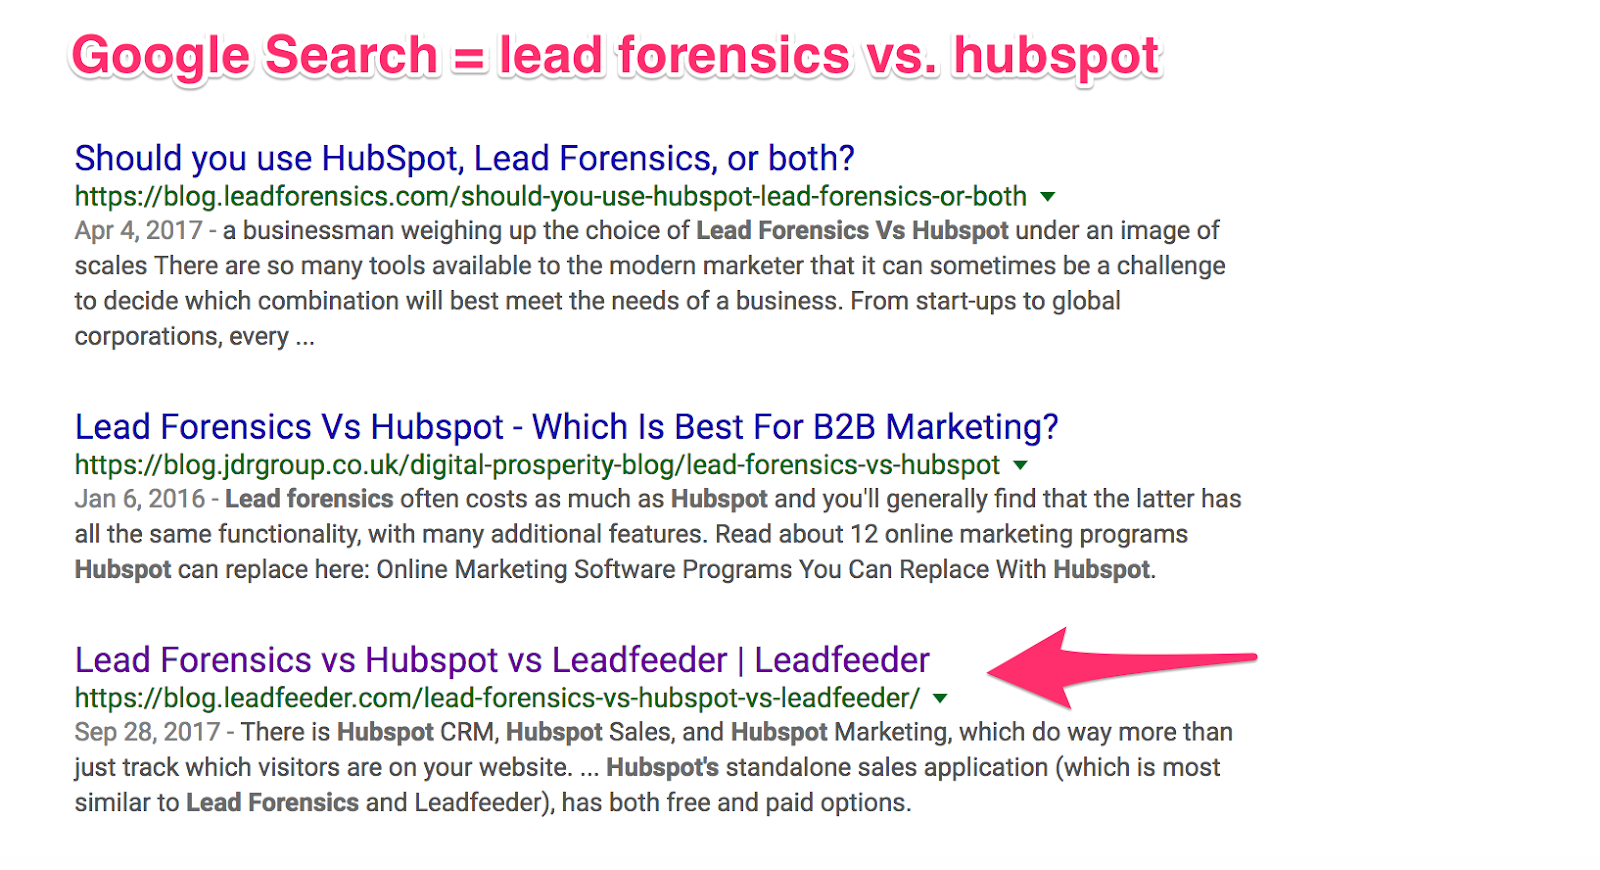 lead forensics vs hubspot Google Search 1